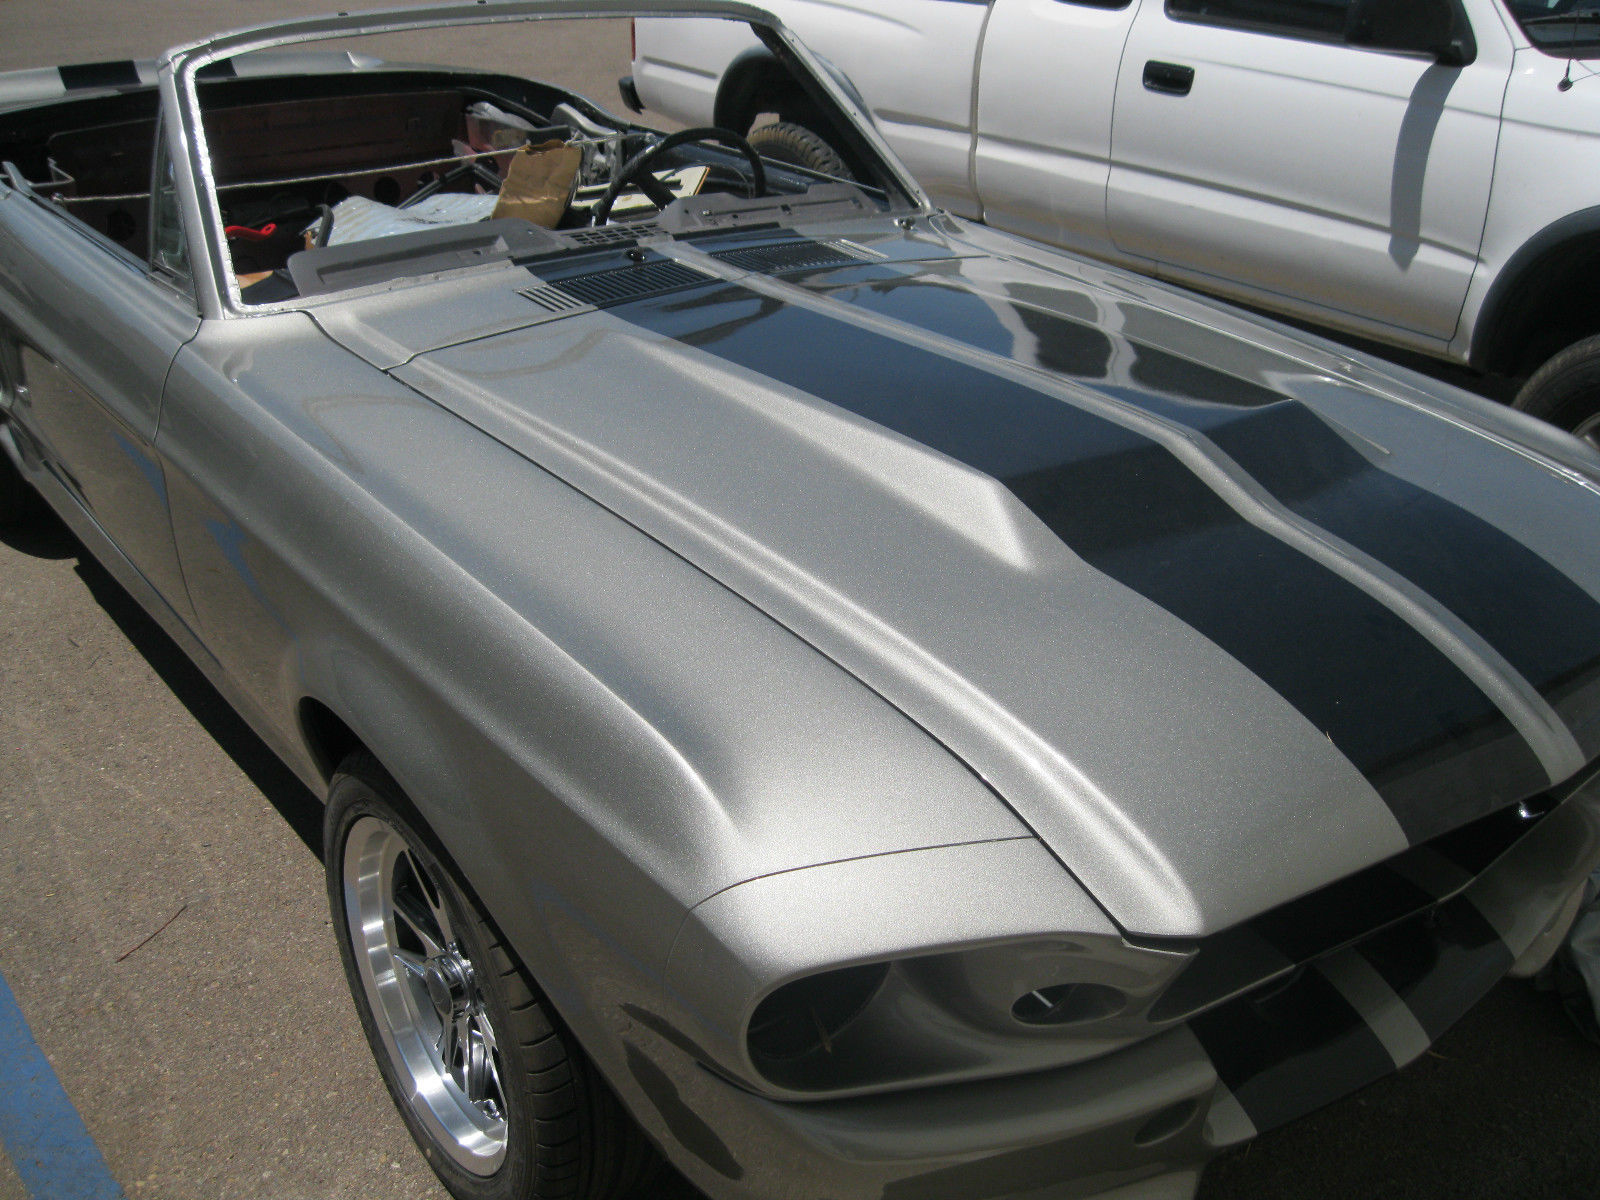 1967 eleanor mustang project car classic ford mustang 1967 for sale. Black Bedroom Furniture Sets. Home Design Ideas